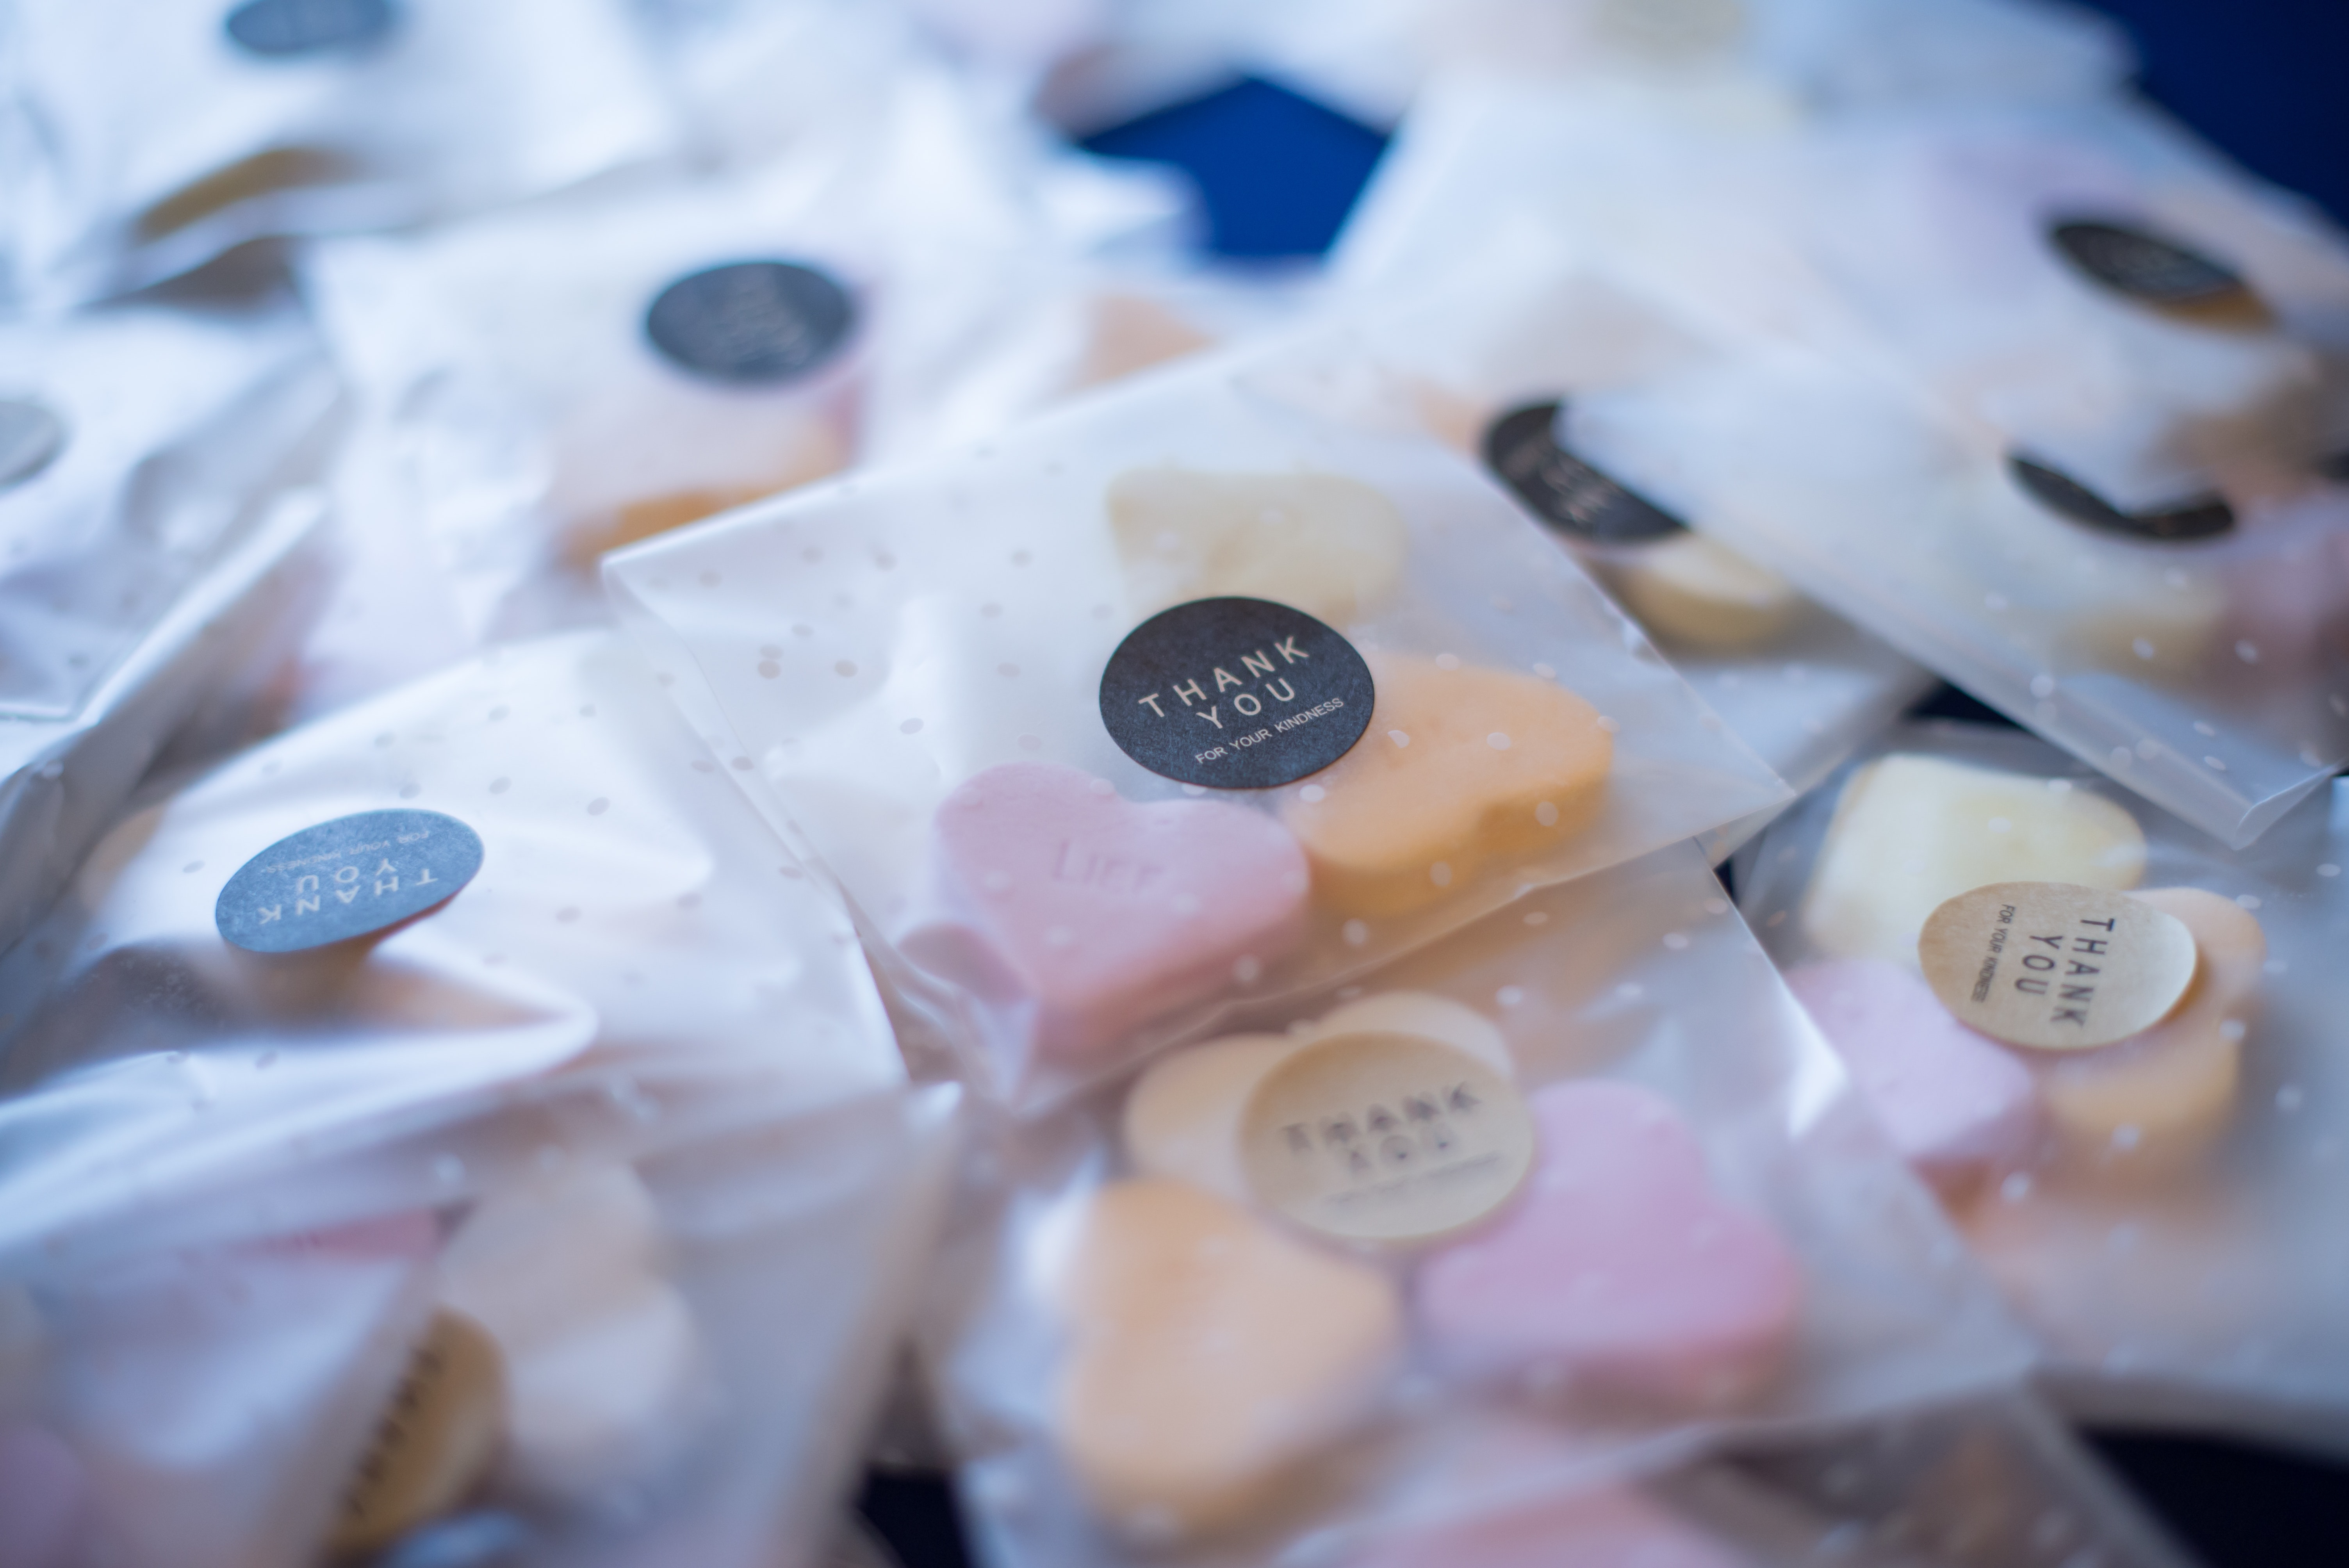 Close Up of Objects, Blur, Homemade, Sweets, Packaging, HQ Photo